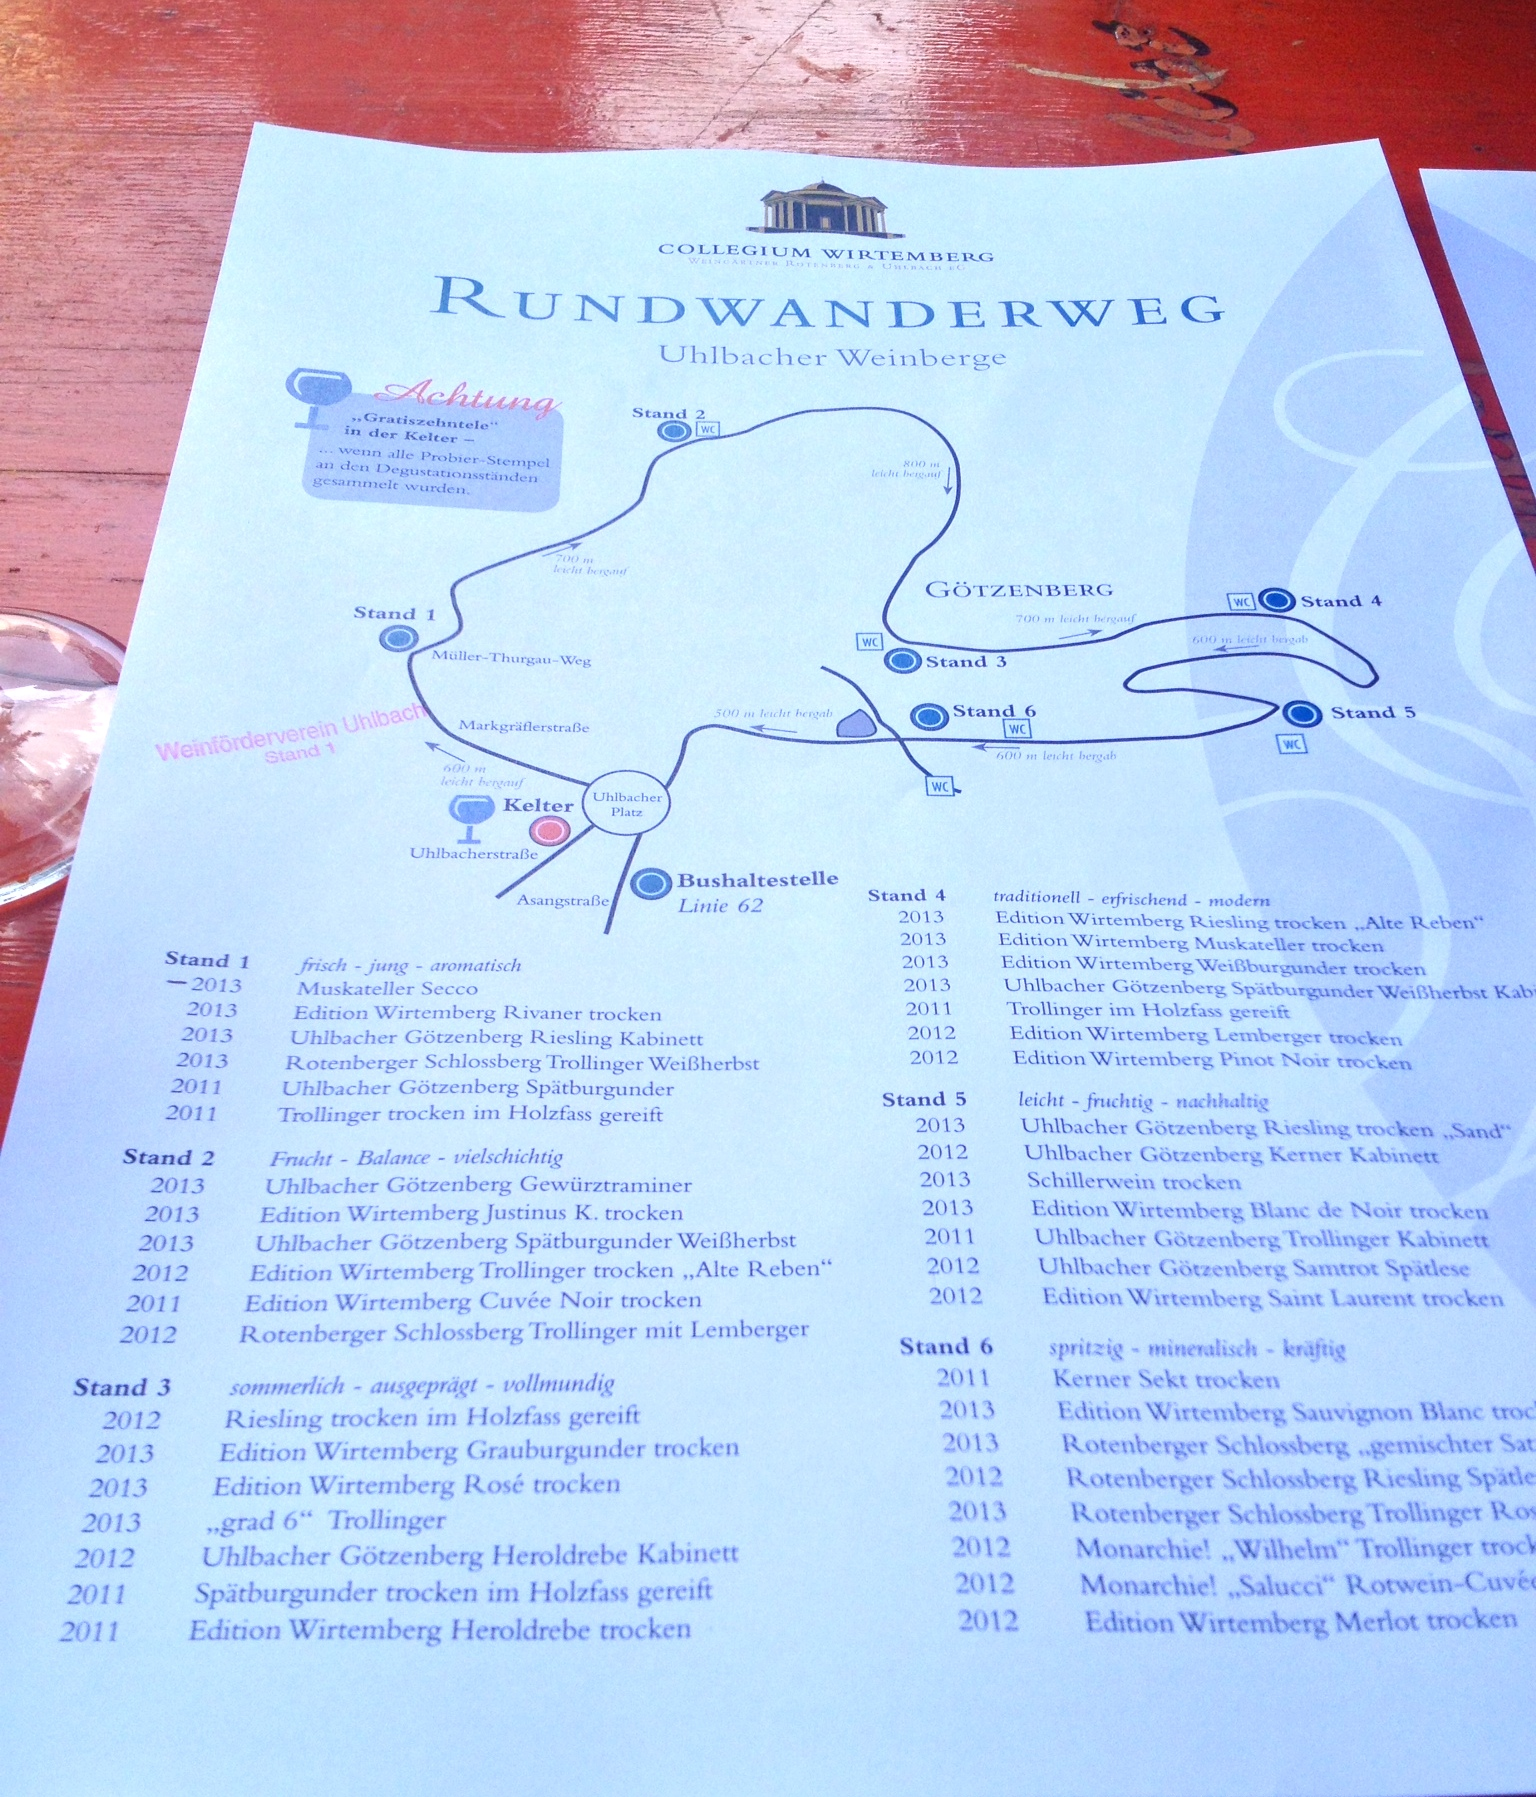 Our walking map and guide to the wines at each stand